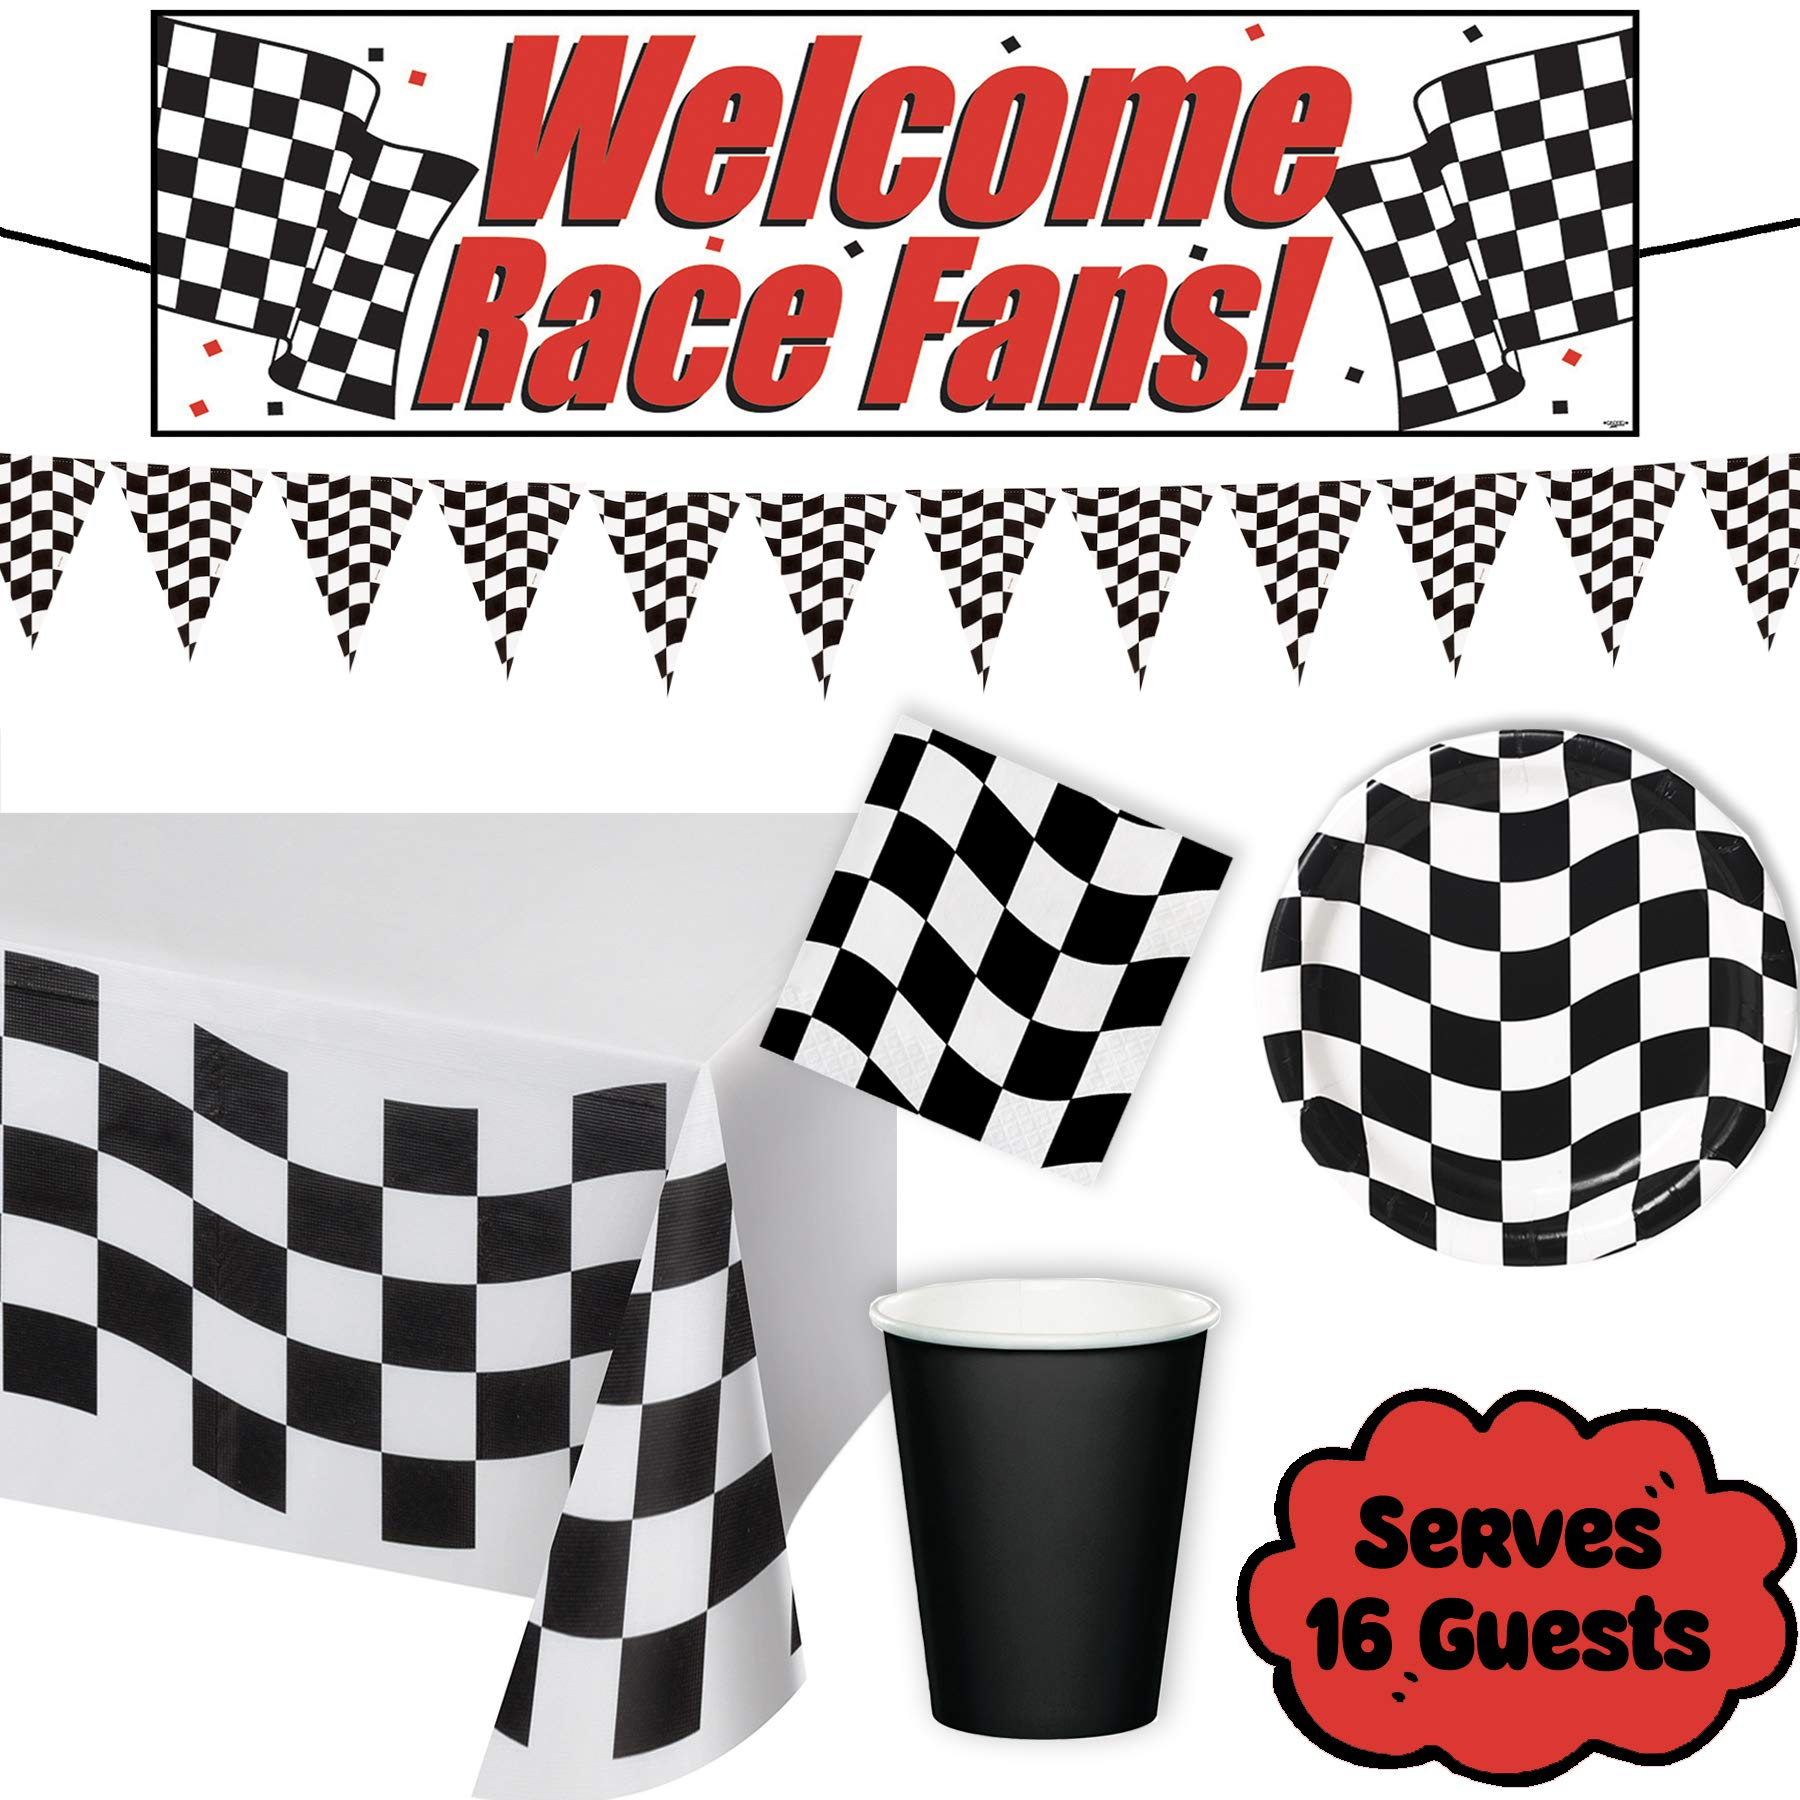 Luci Ray - Checkered Race Car Party Supplies Birthday Decorations Set for 16 GUESTS - plastic tablecloth, race banner, checkered pennant banner, plates, napkins, black cups